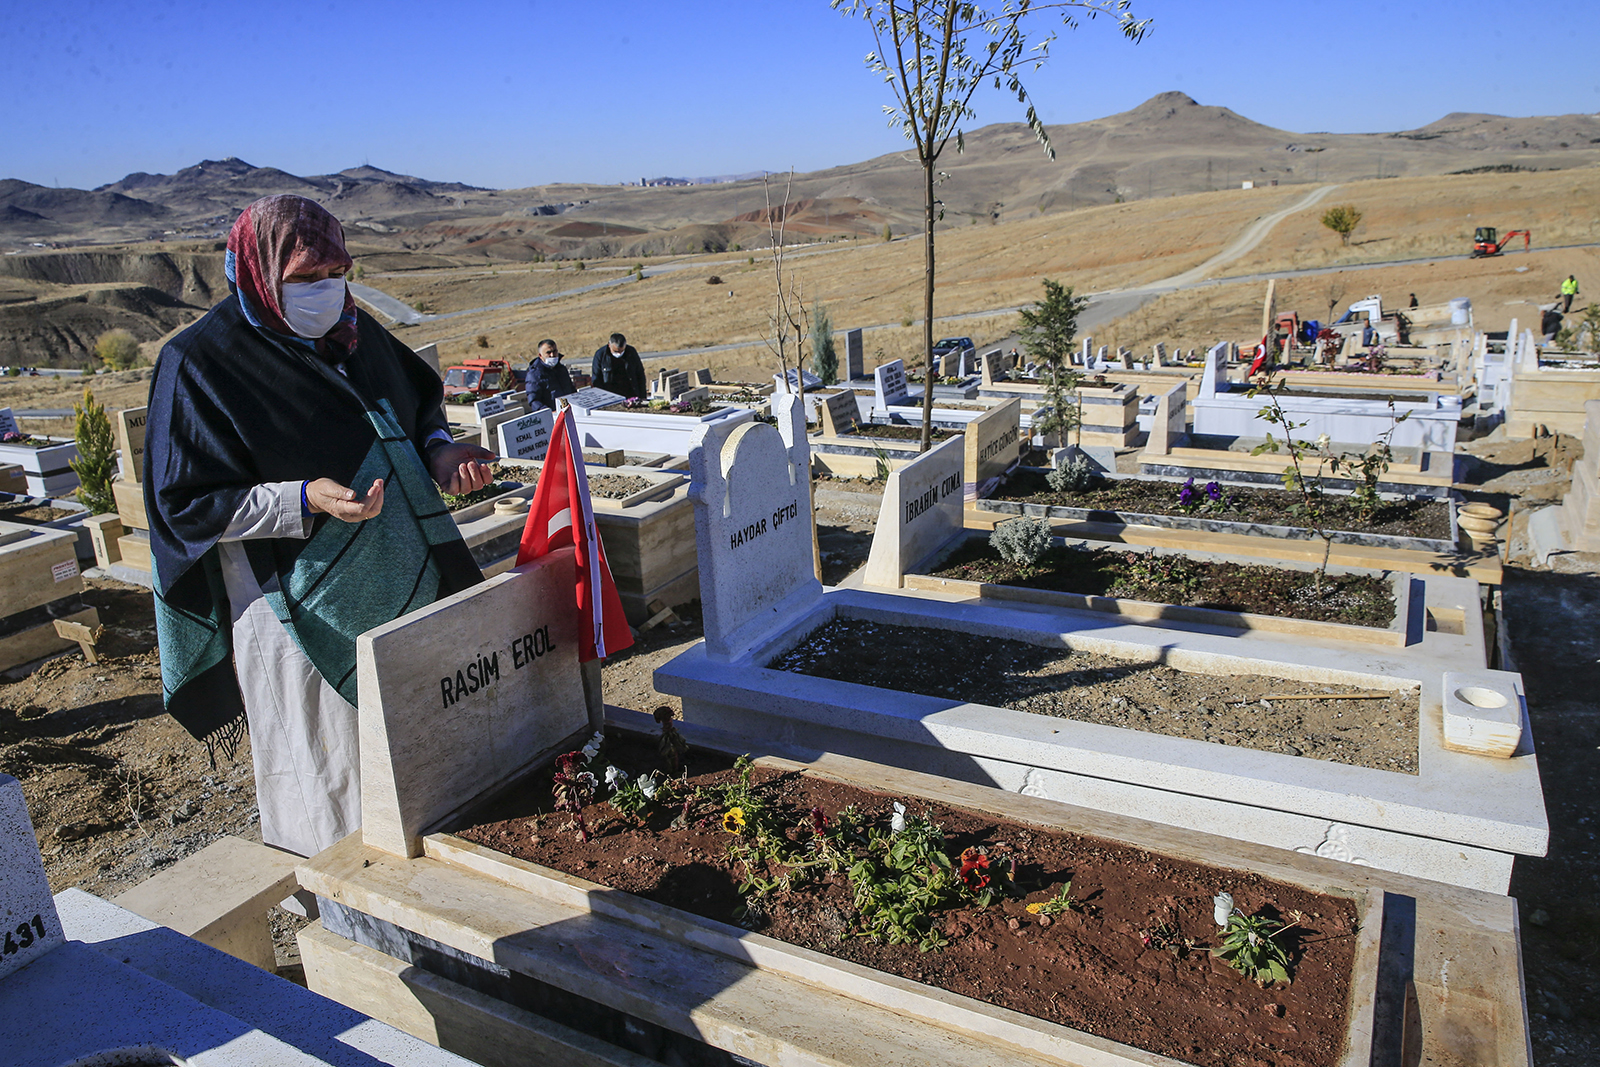 Relatives of Covid-19 victims visit graves at Ortakoy cemetery in Ankara, Turkey, on November 24.